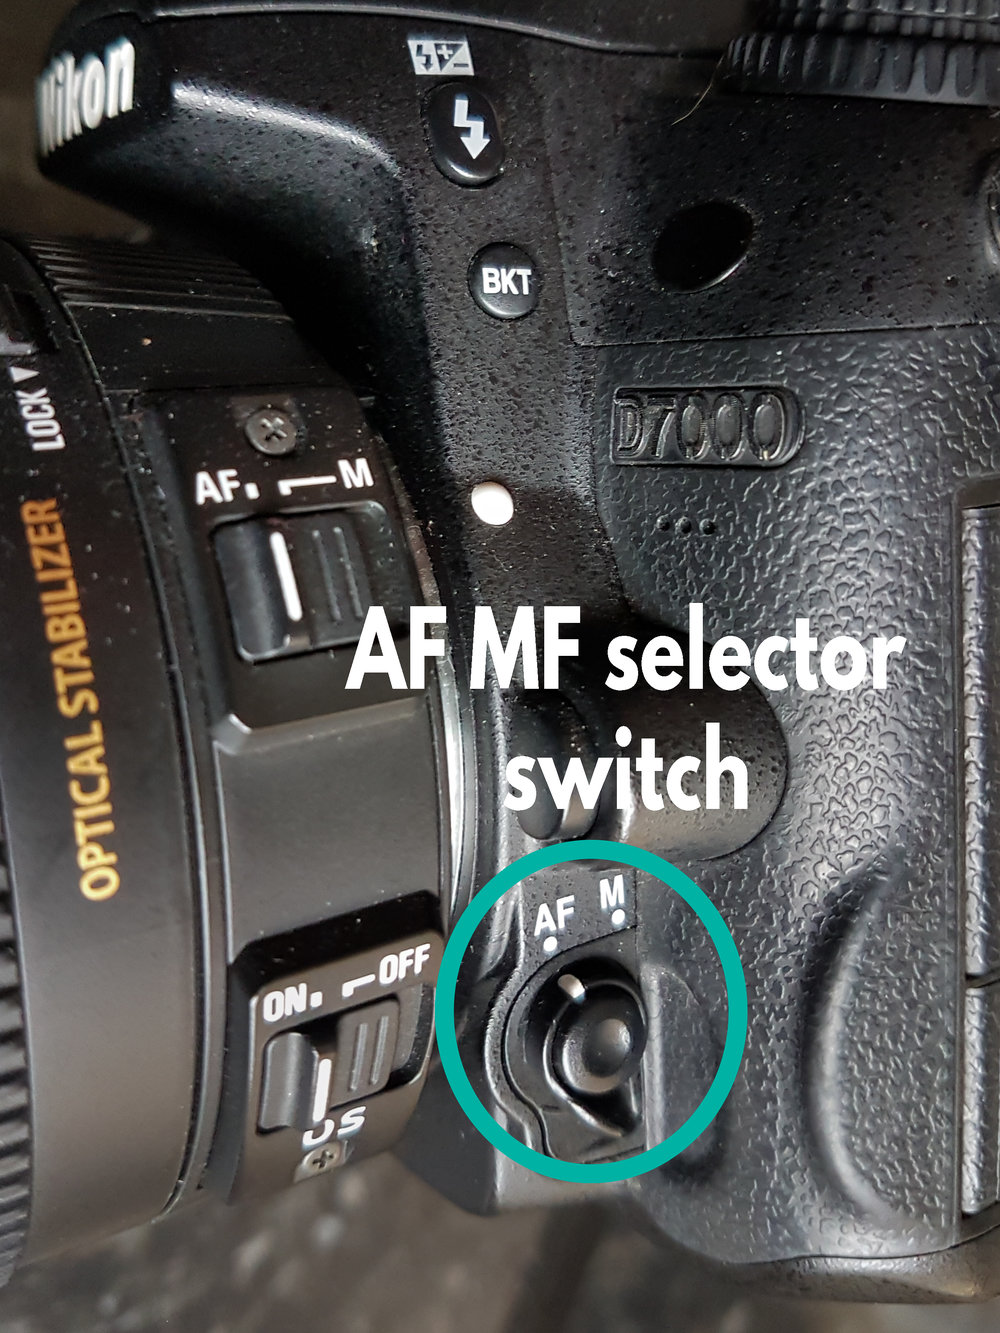 AF MF selector switch - Switch between auto focus and manual focus